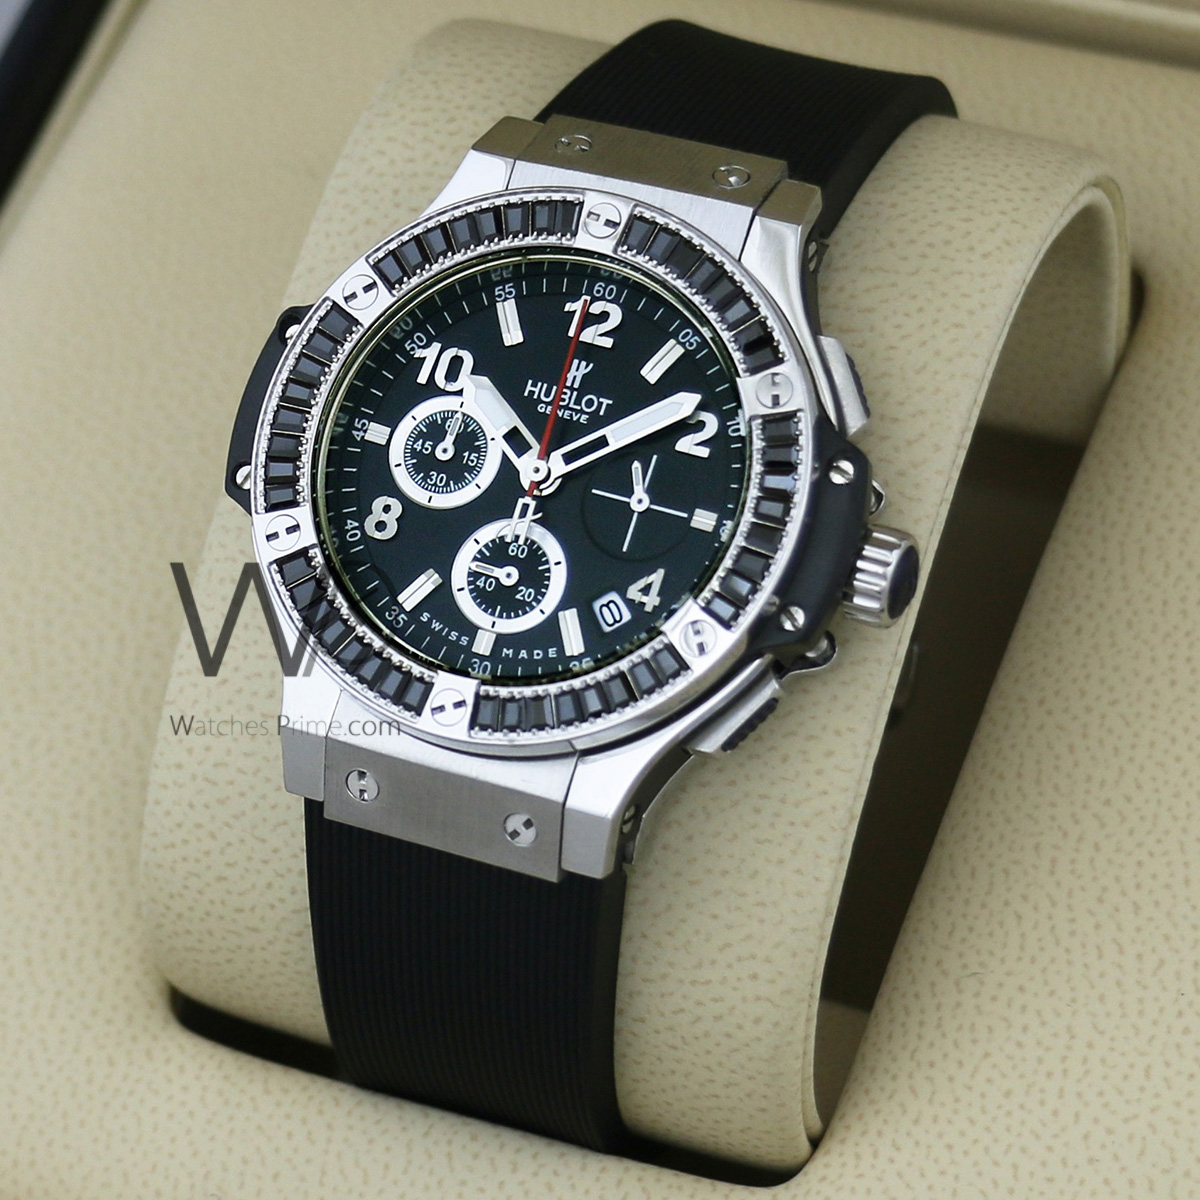 fad546d19 ... CHRONOGRAPH WATCH BLACK WITH RUBBER BLACK BELT. SKU: W708. Roll over  image to zoom in